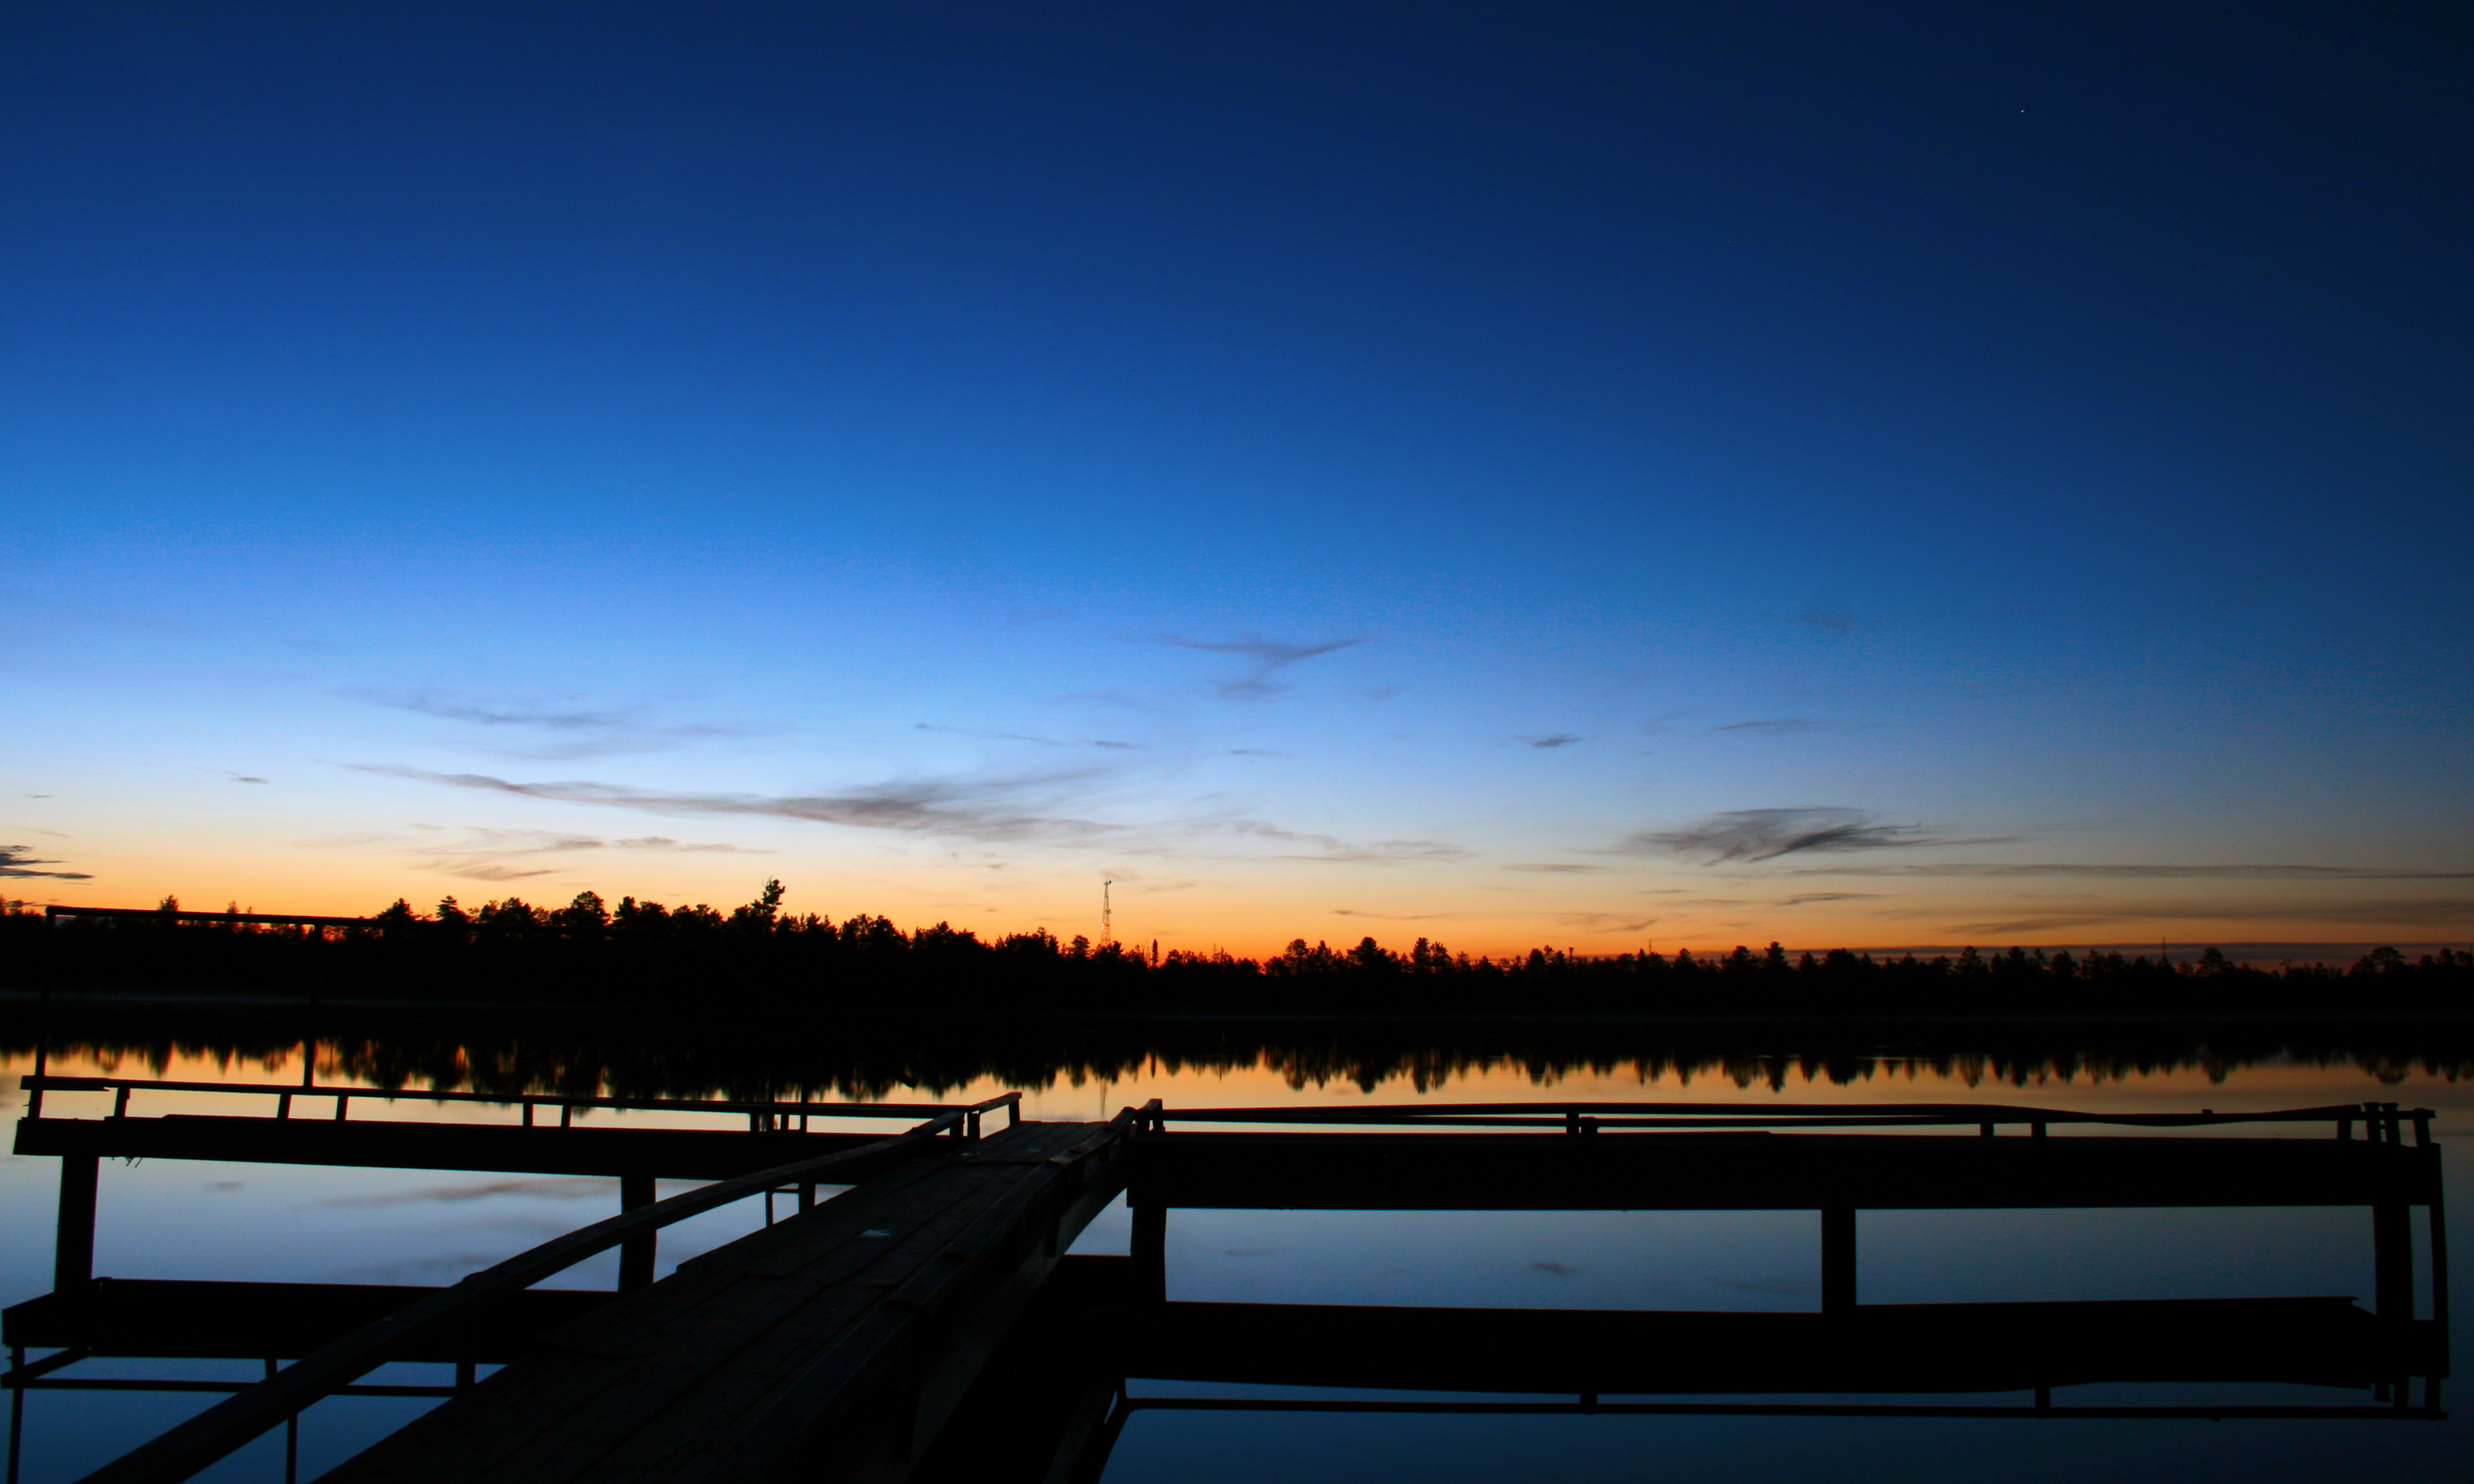 Night scenery over lake and pier photo